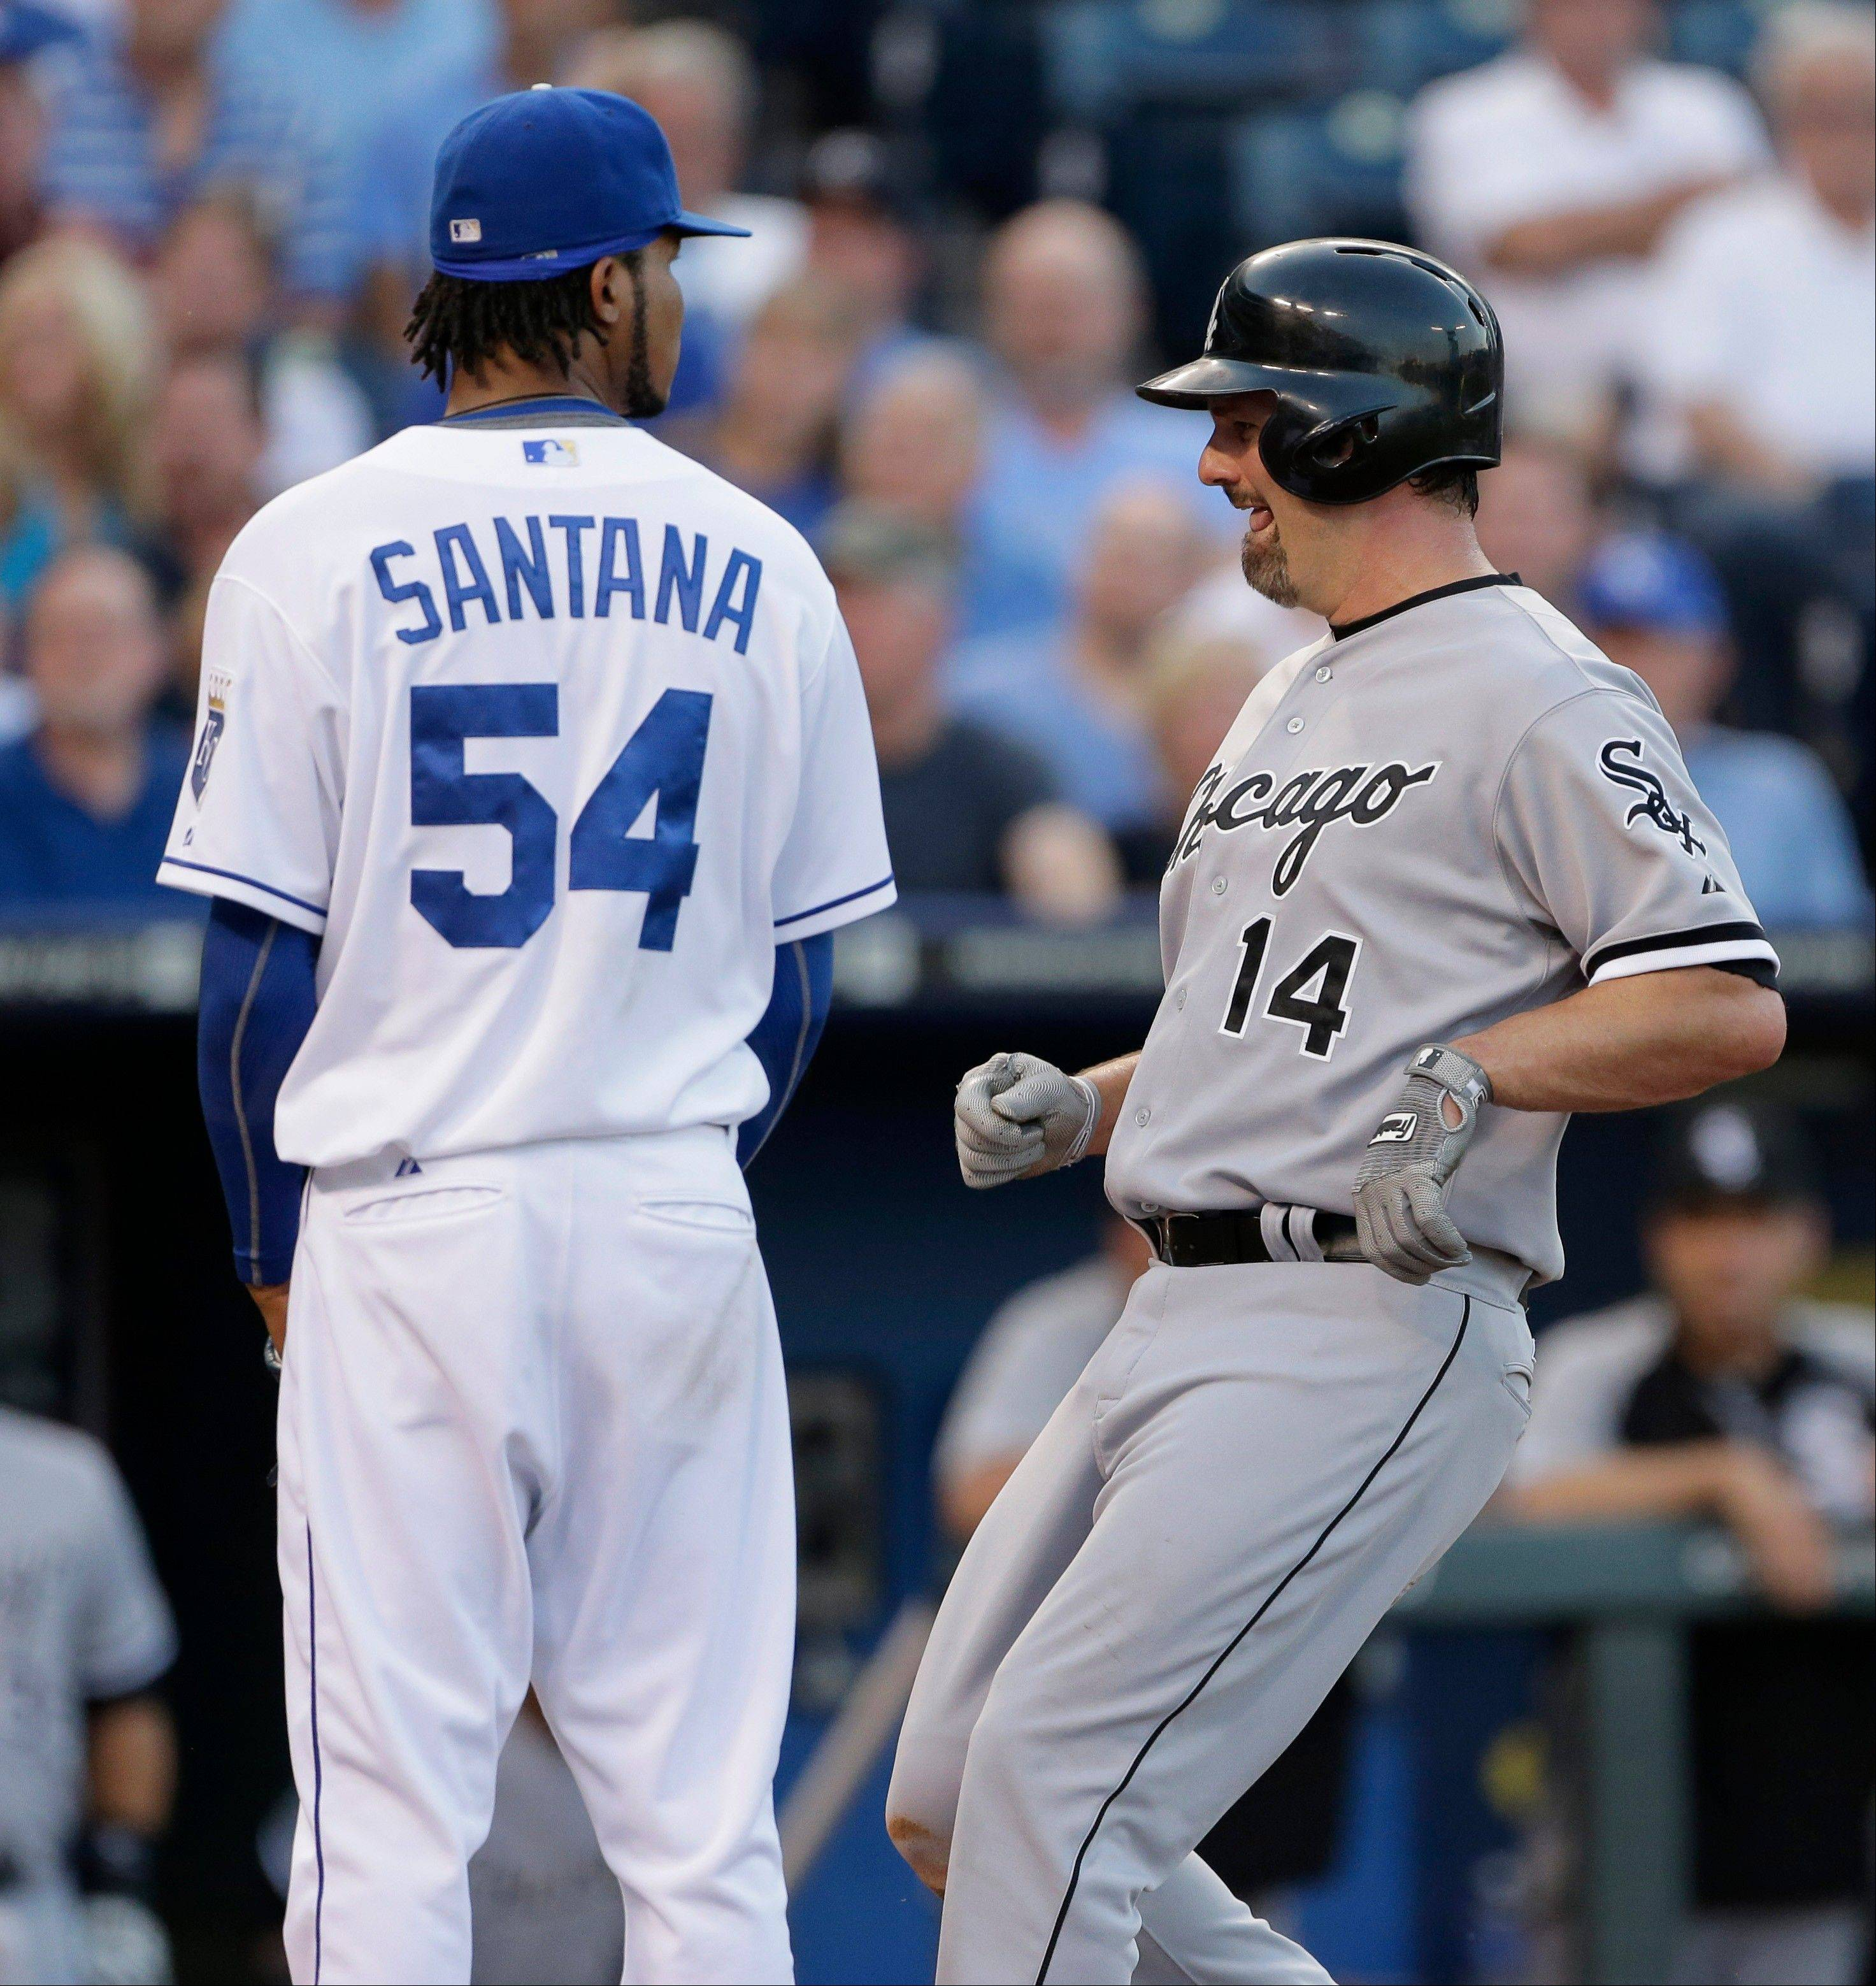 Paul Konerko runs past Royals starting pitcher Ervin Santana as he scores on a passed ball during Tuesday night's 2-0 White Sox victory.